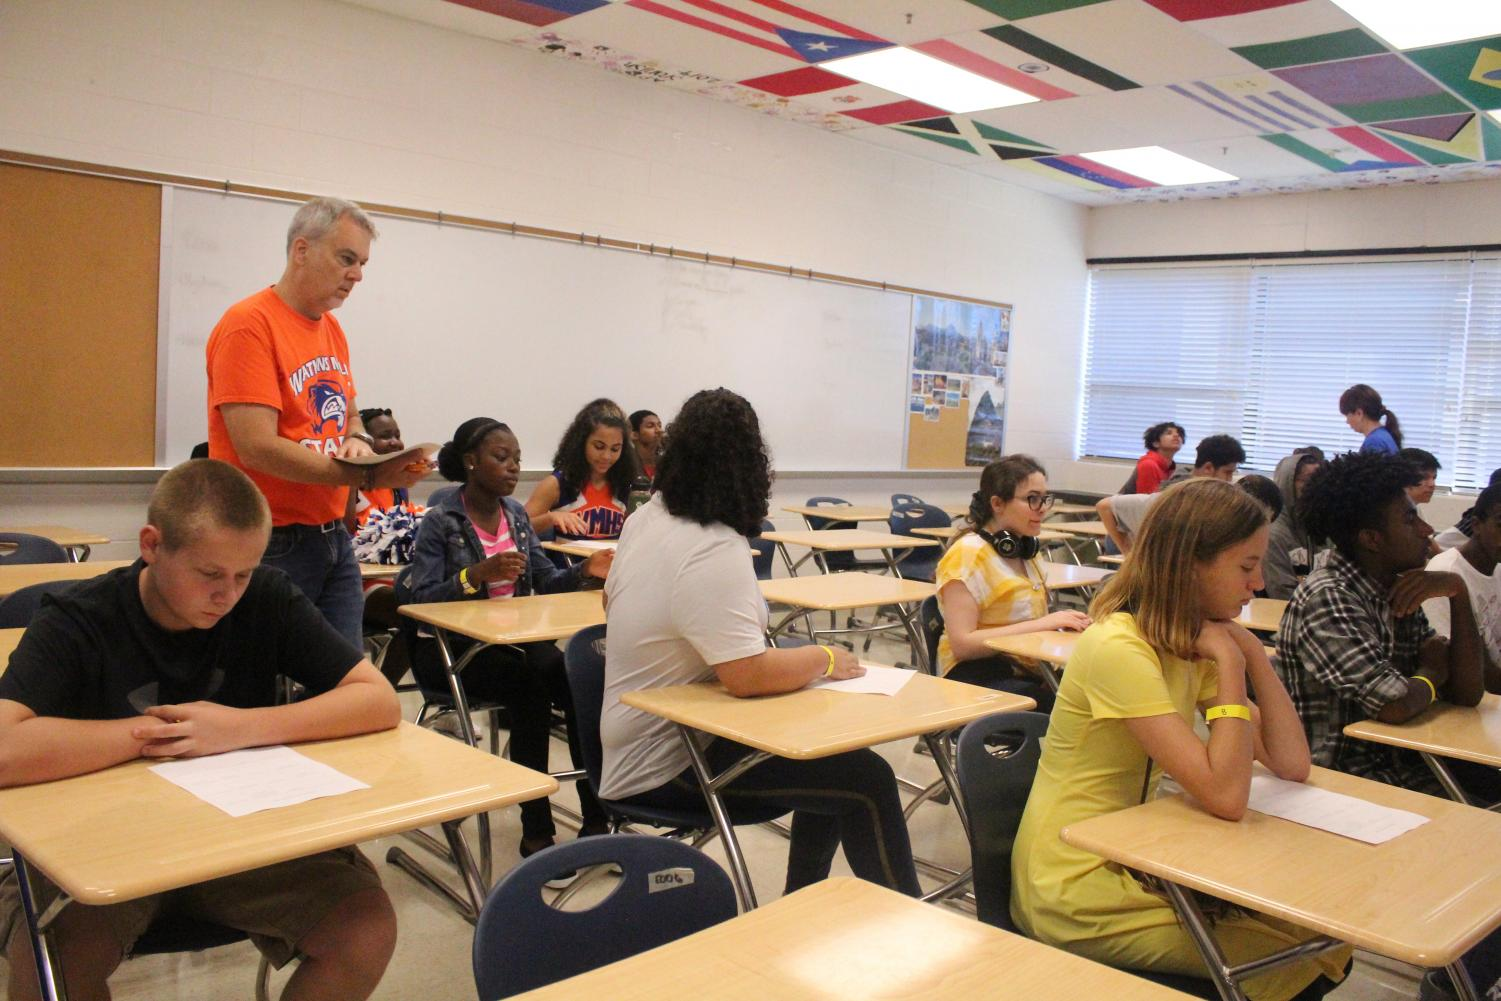 New+students+listen+to+the+foreign+language+teachers+during+orientation.